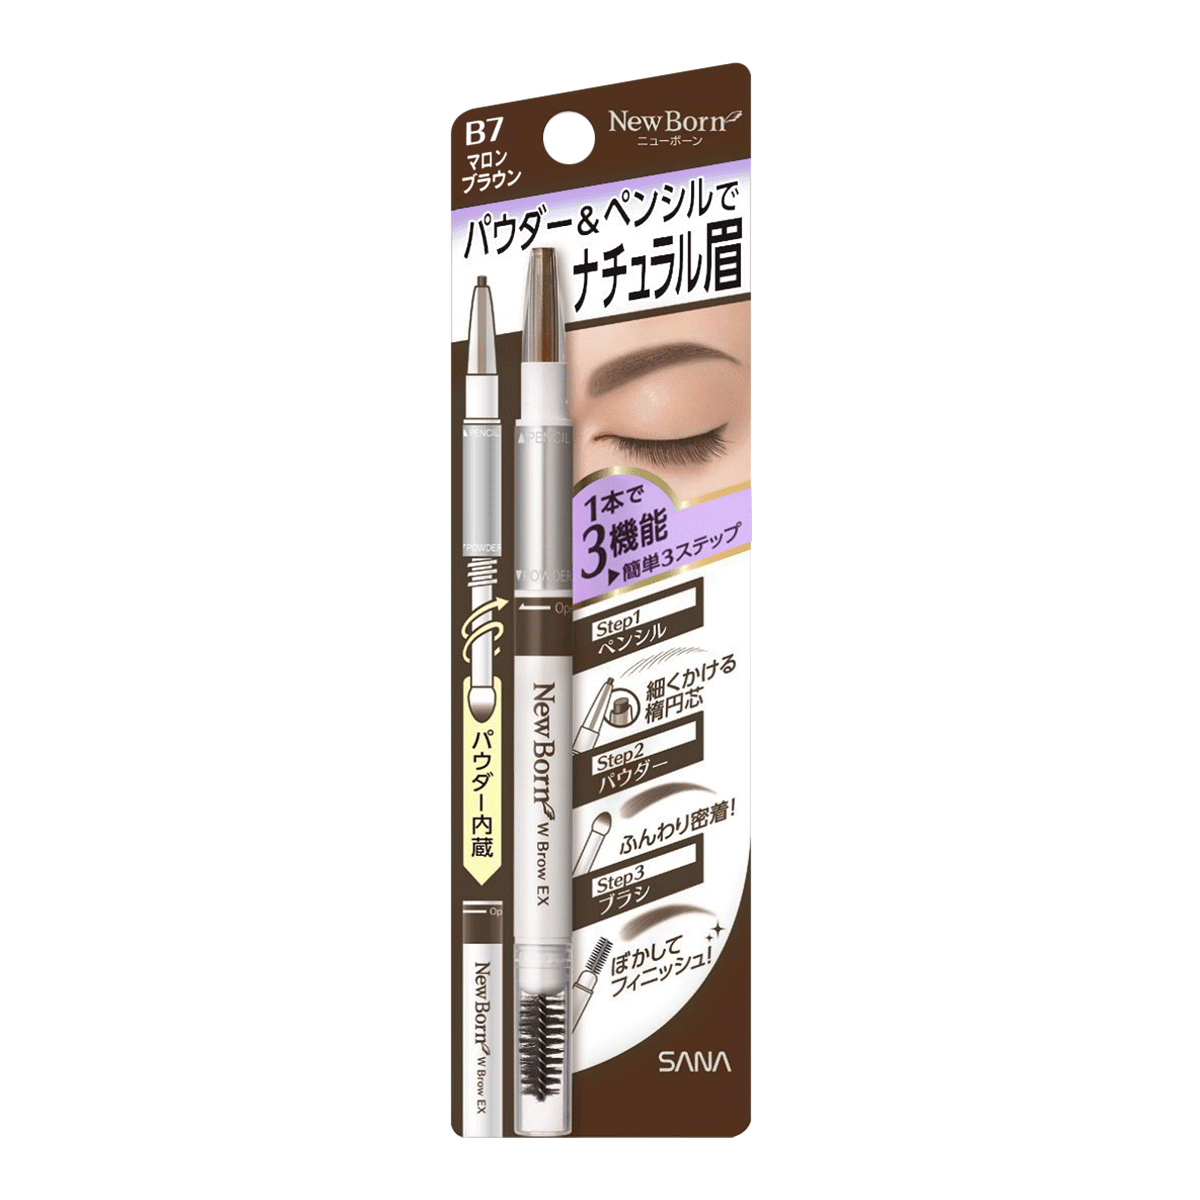 Yamibuy.com:Customer reviews:SANA NEW BORN EX Eyebrow Mascara And Pencil #B7 Maroon Brown 1pc